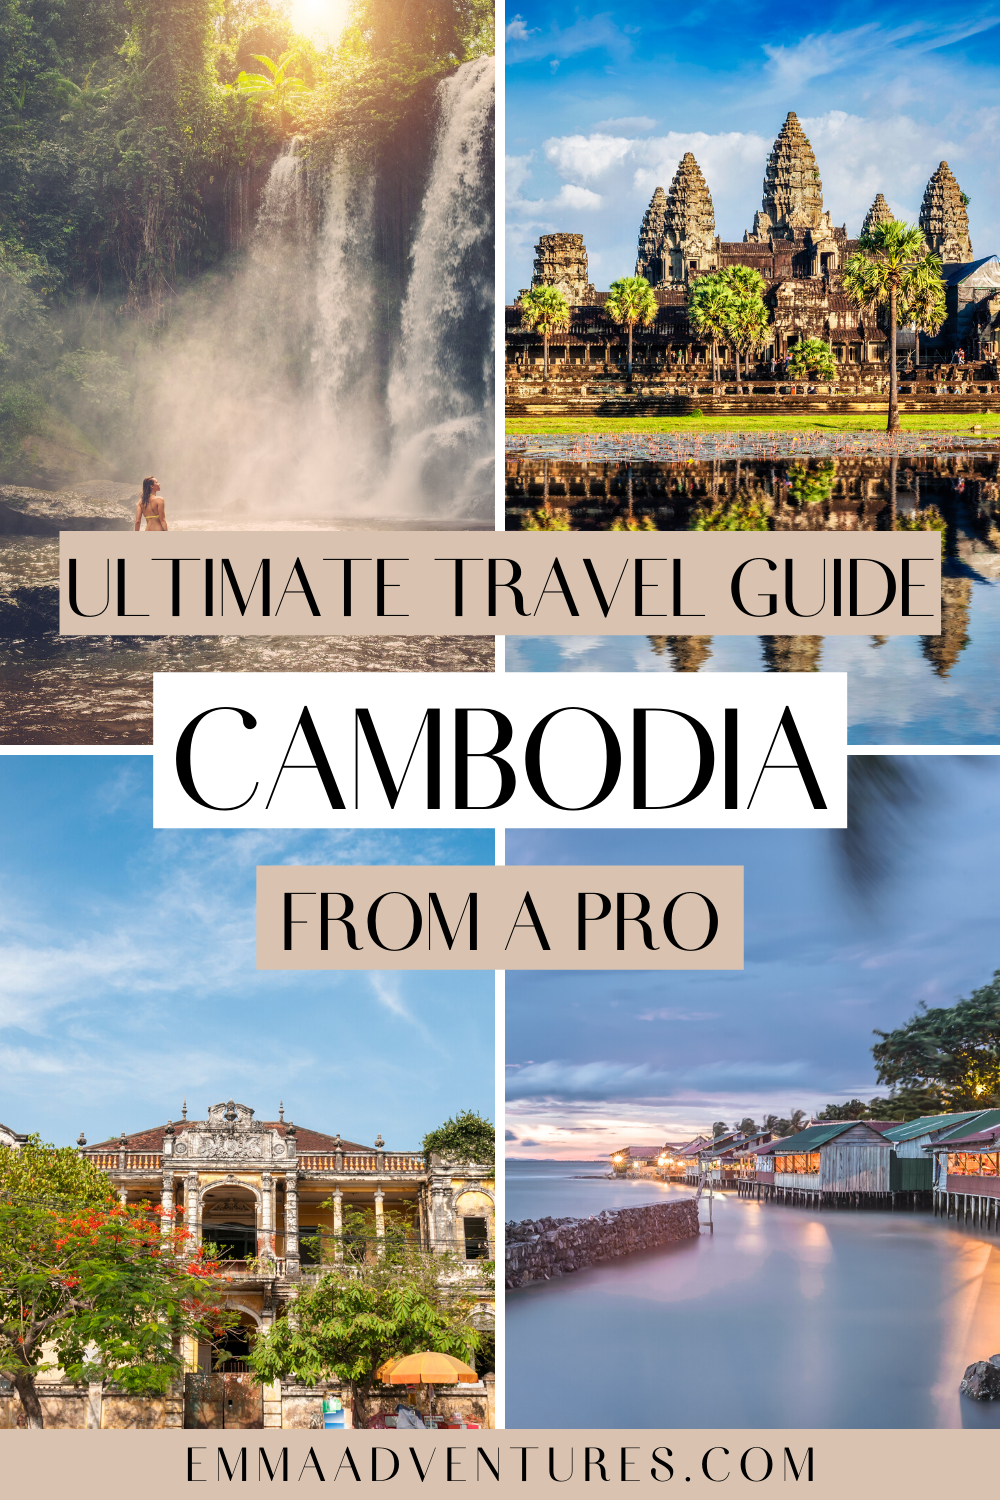 The ultimate guide to travel in Cambodia! Here's everything you need to know about travel in Cambodia with tips from a pro. Where to go in Cambodia, the best things to see and do in Cambodia, plus where to eat, drink and stay! Travel guides to Siem Reap, Angkor Wat, Phnom Penh, Koh Rong and Kampot! Read it now! #cambodia #cambodiatravel #southeastasia